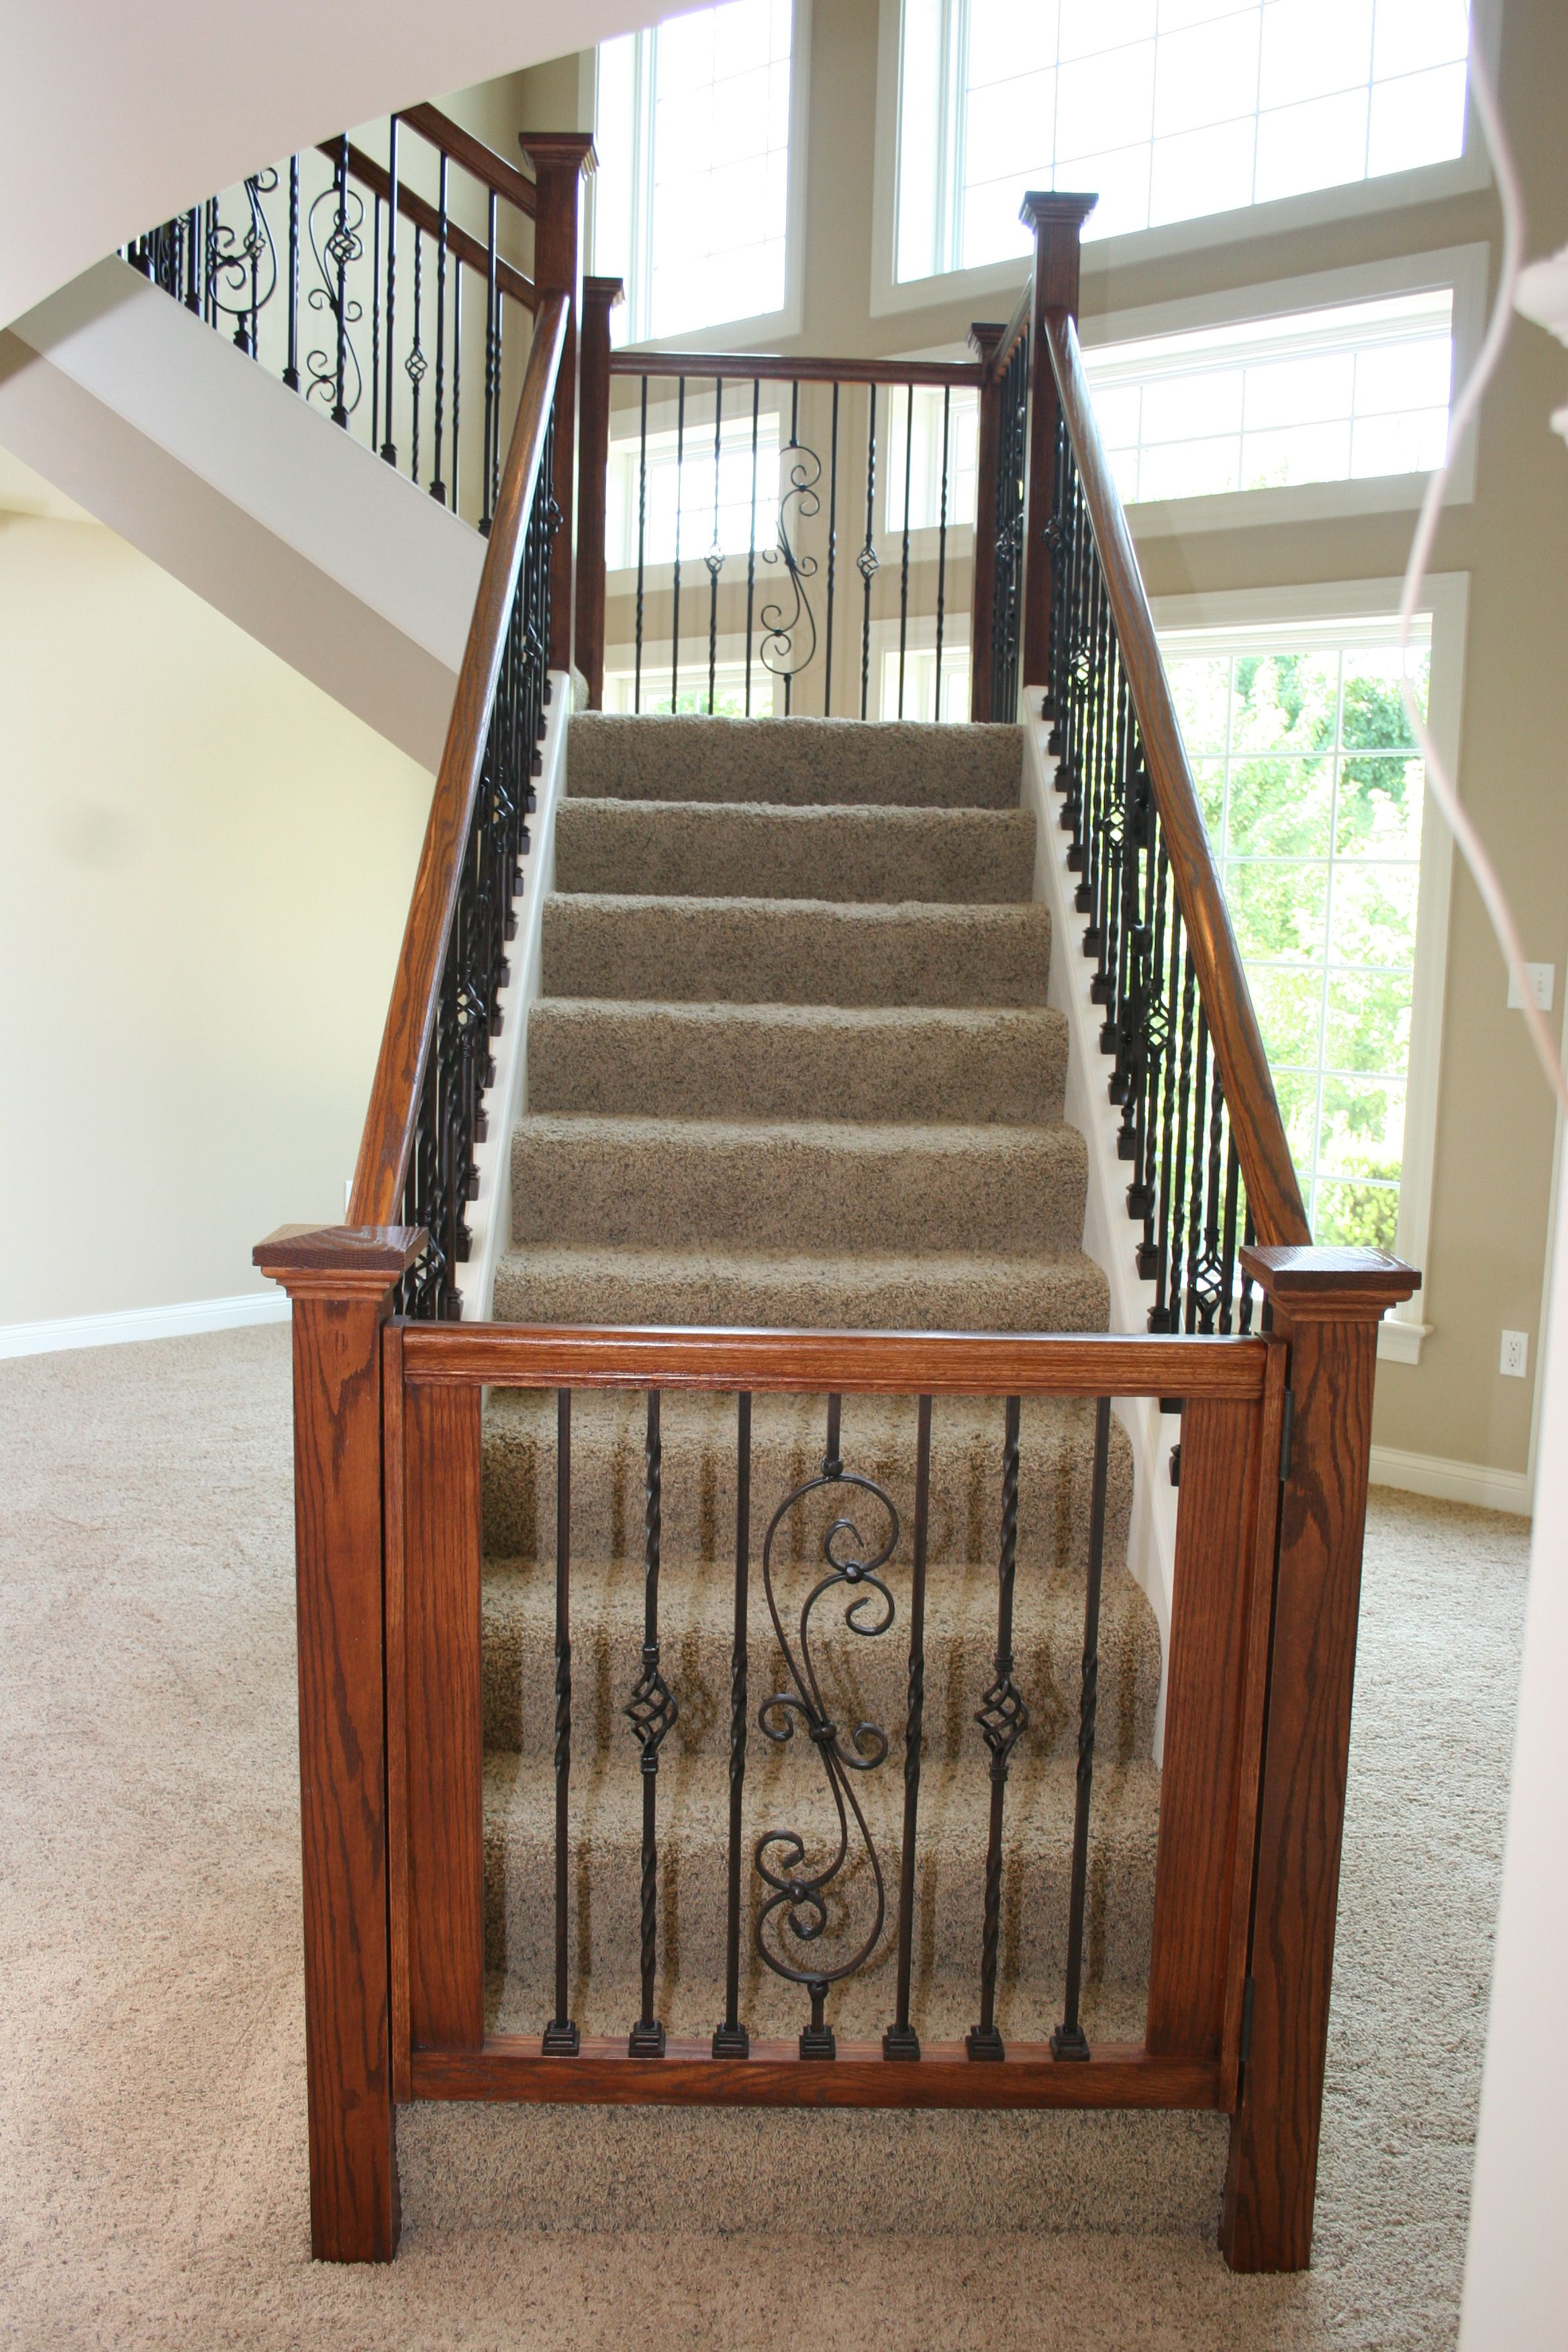 Dressing Up The Lower Level Dog Gates For Stairs Wooden Stair Gate Baby Gate For Stairs